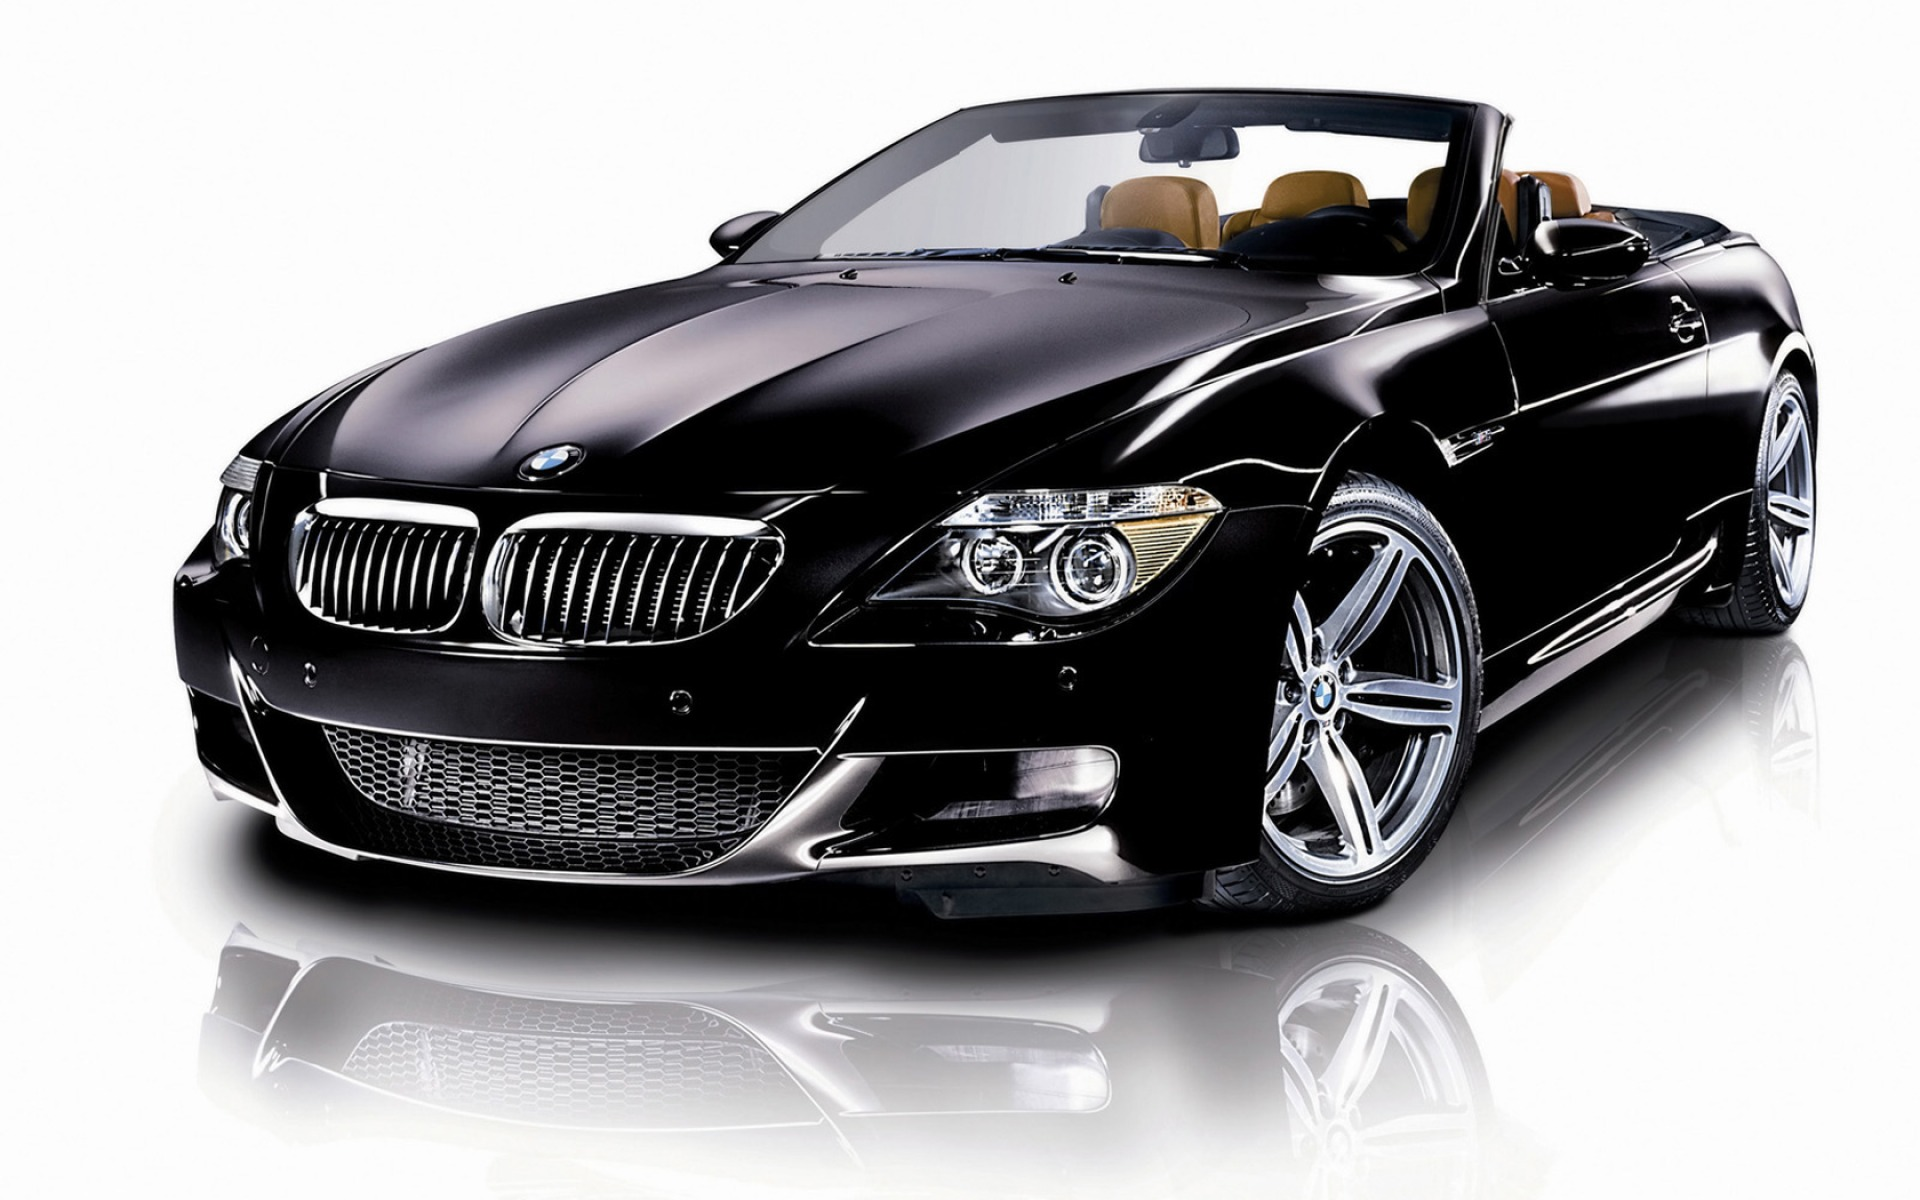 Ultrablogus  Sweet Bmw Car Wallpaper Wallpapers For Free Download About   With Lovely Bmw M Convertible Wallpaper Bmw Cars With Amazing Interior Croc Also S Interior In S In Addition Civic  Interior And E Custom Interior As Well As Vw Transporter T Interior Additionally Honda Accord  Interior From Allfreedownloadcom With Ultrablogus  Lovely Bmw Car Wallpaper Wallpapers For Free Download About   With Amazing Bmw M Convertible Wallpaper Bmw Cars And Sweet Interior Croc Also S Interior In S In Addition Civic  Interior From Allfreedownloadcom